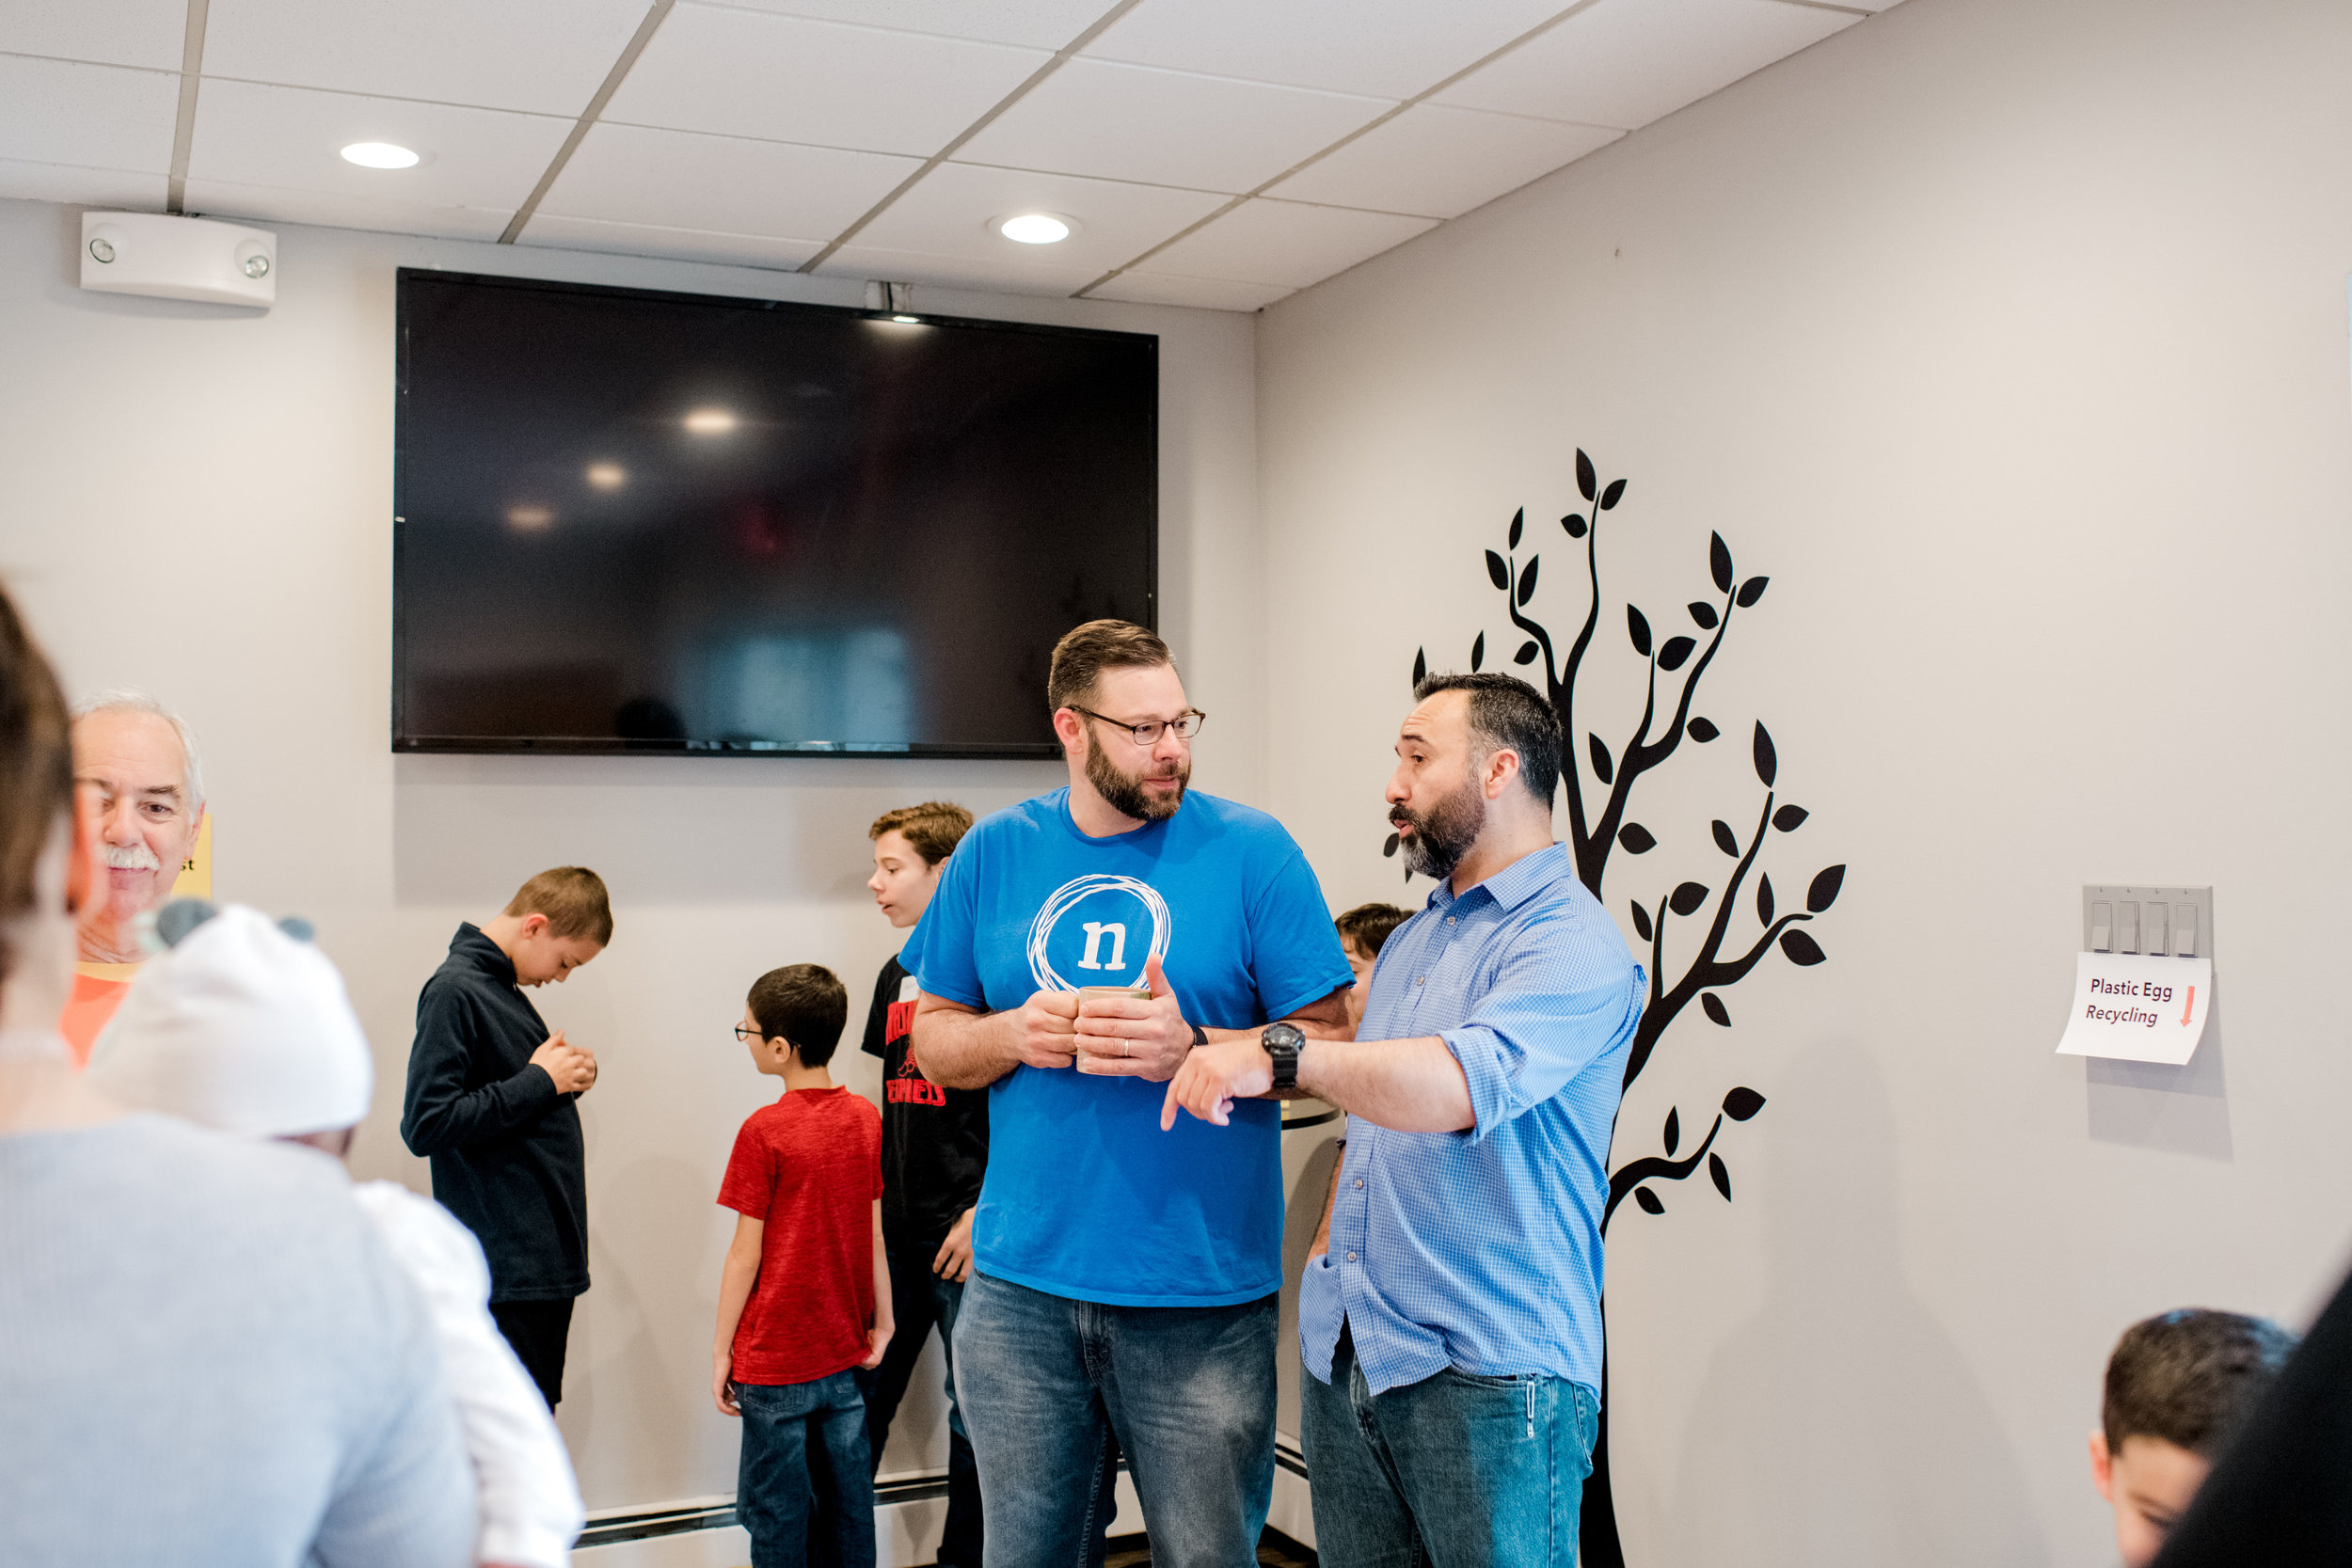 GET CONNECTED - We are a family that is passionate about building a healthy vibrant community in Morristown.